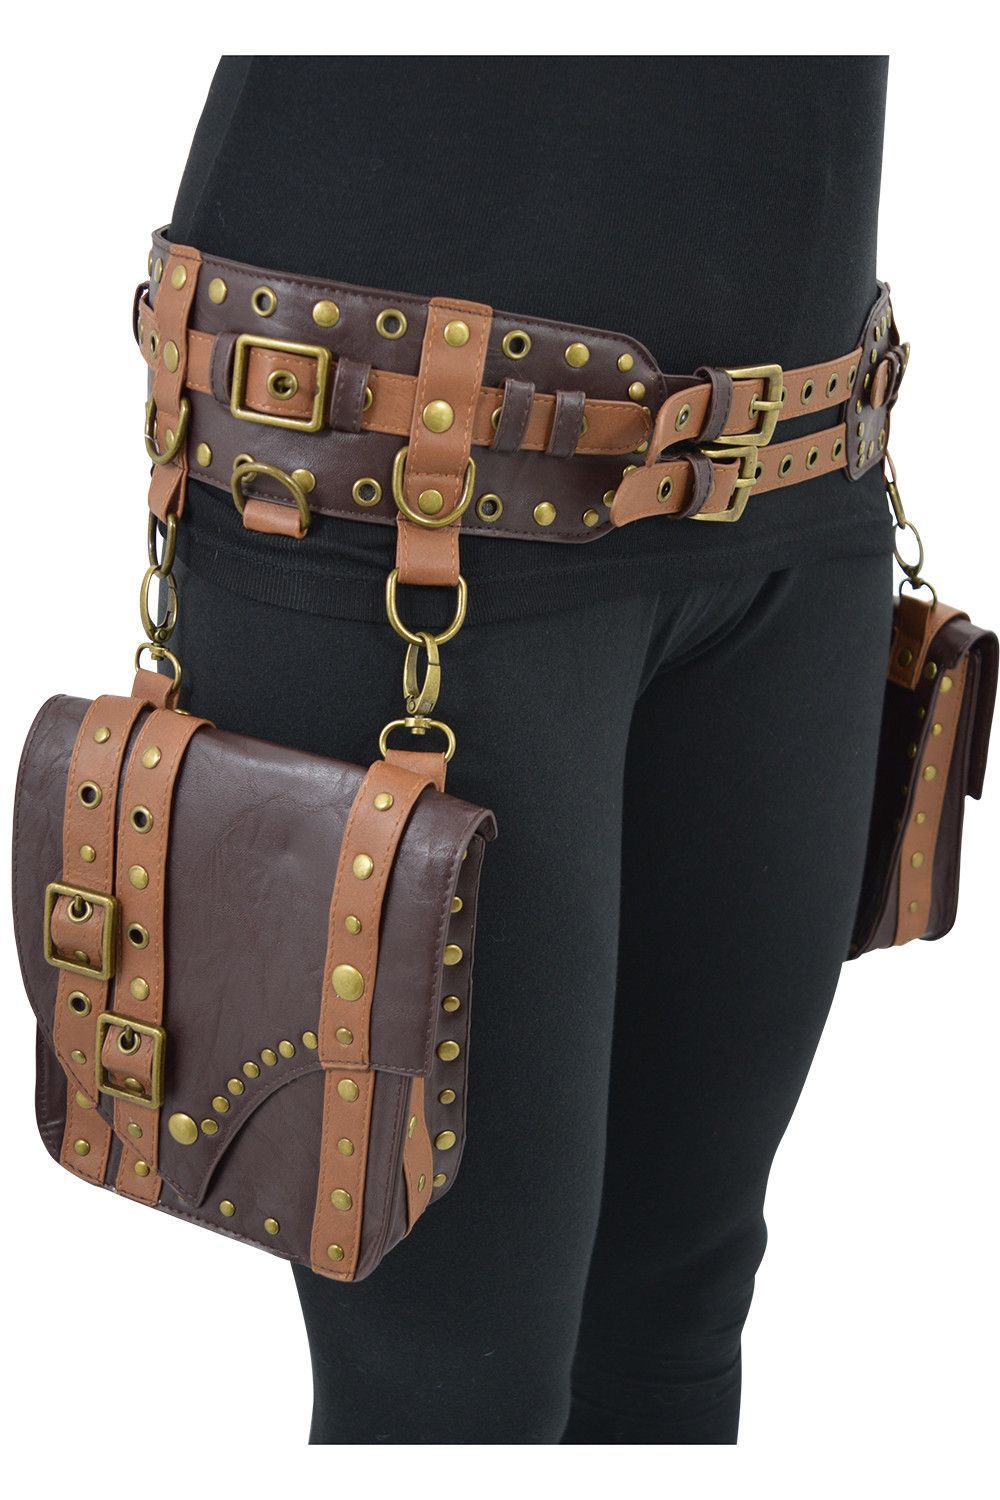 Restyle Western Steampunk Hip Saddle bags Double Buckle